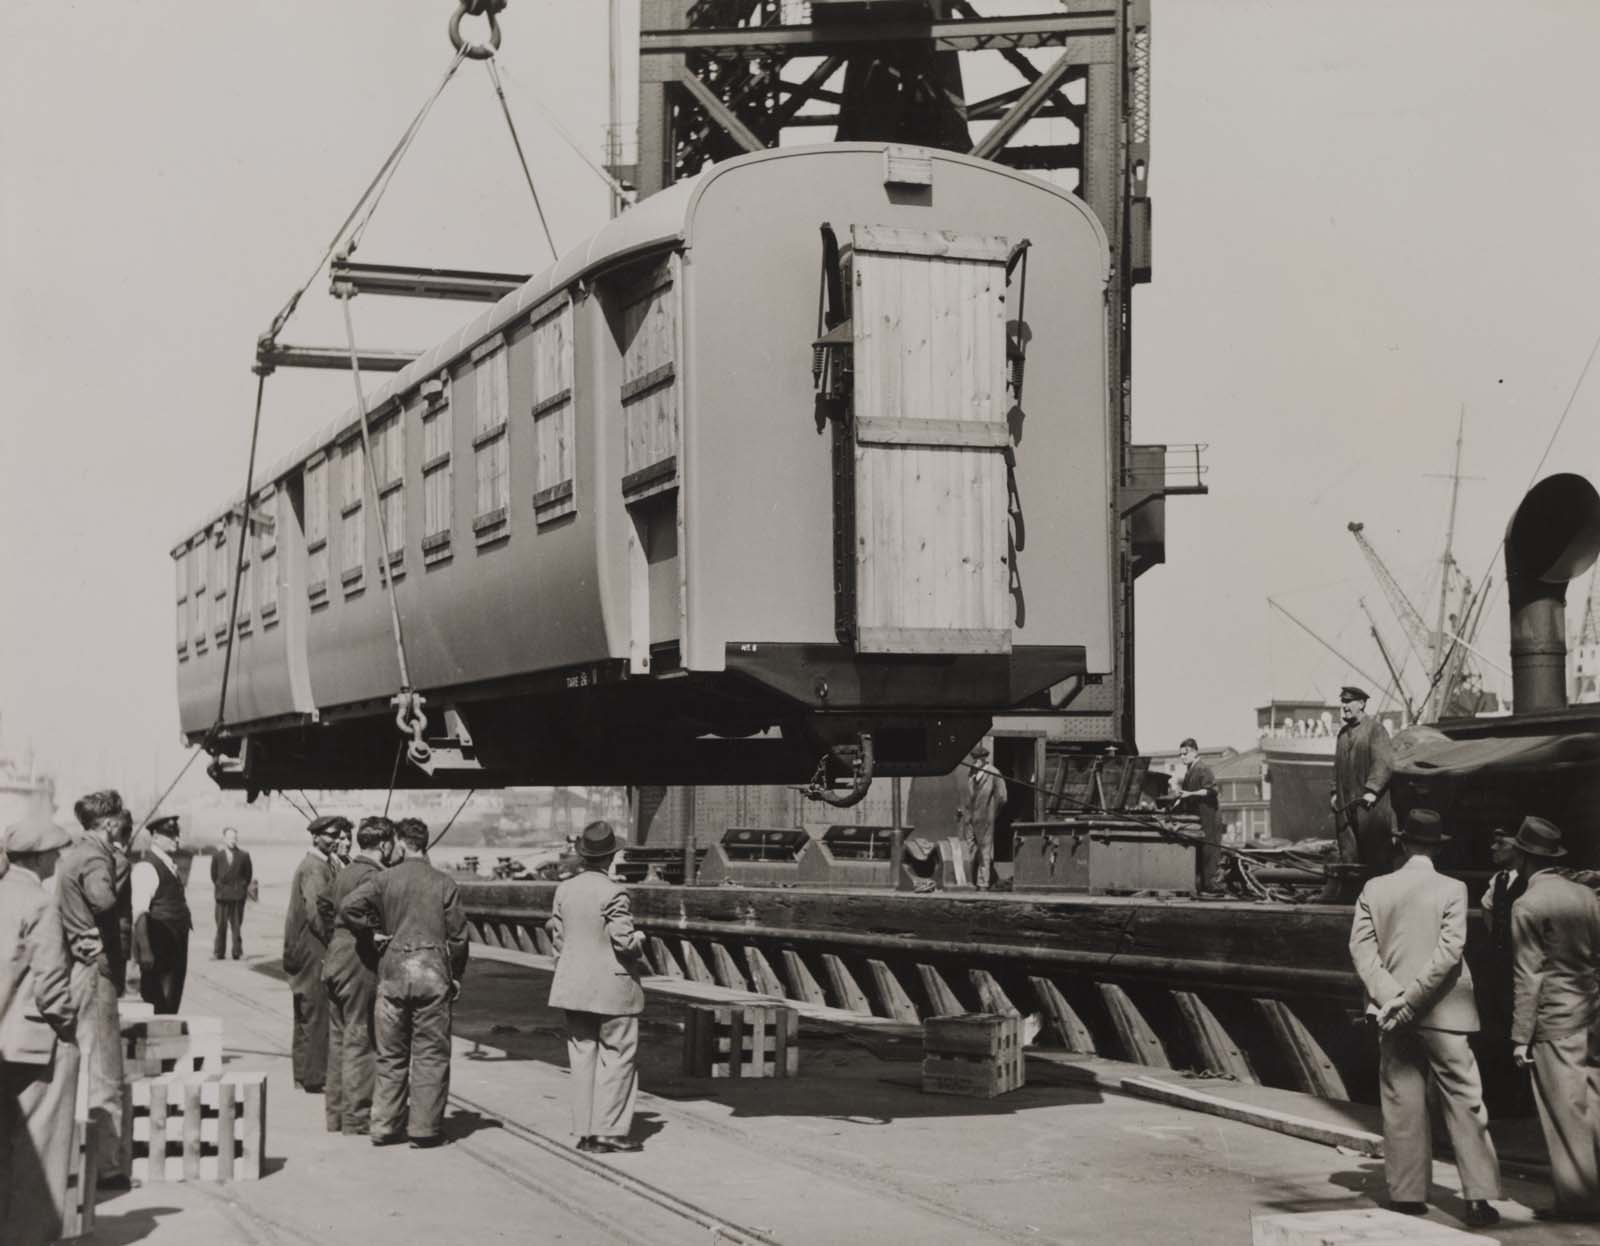 photo of a railway carriage being craned onto the side of a dock